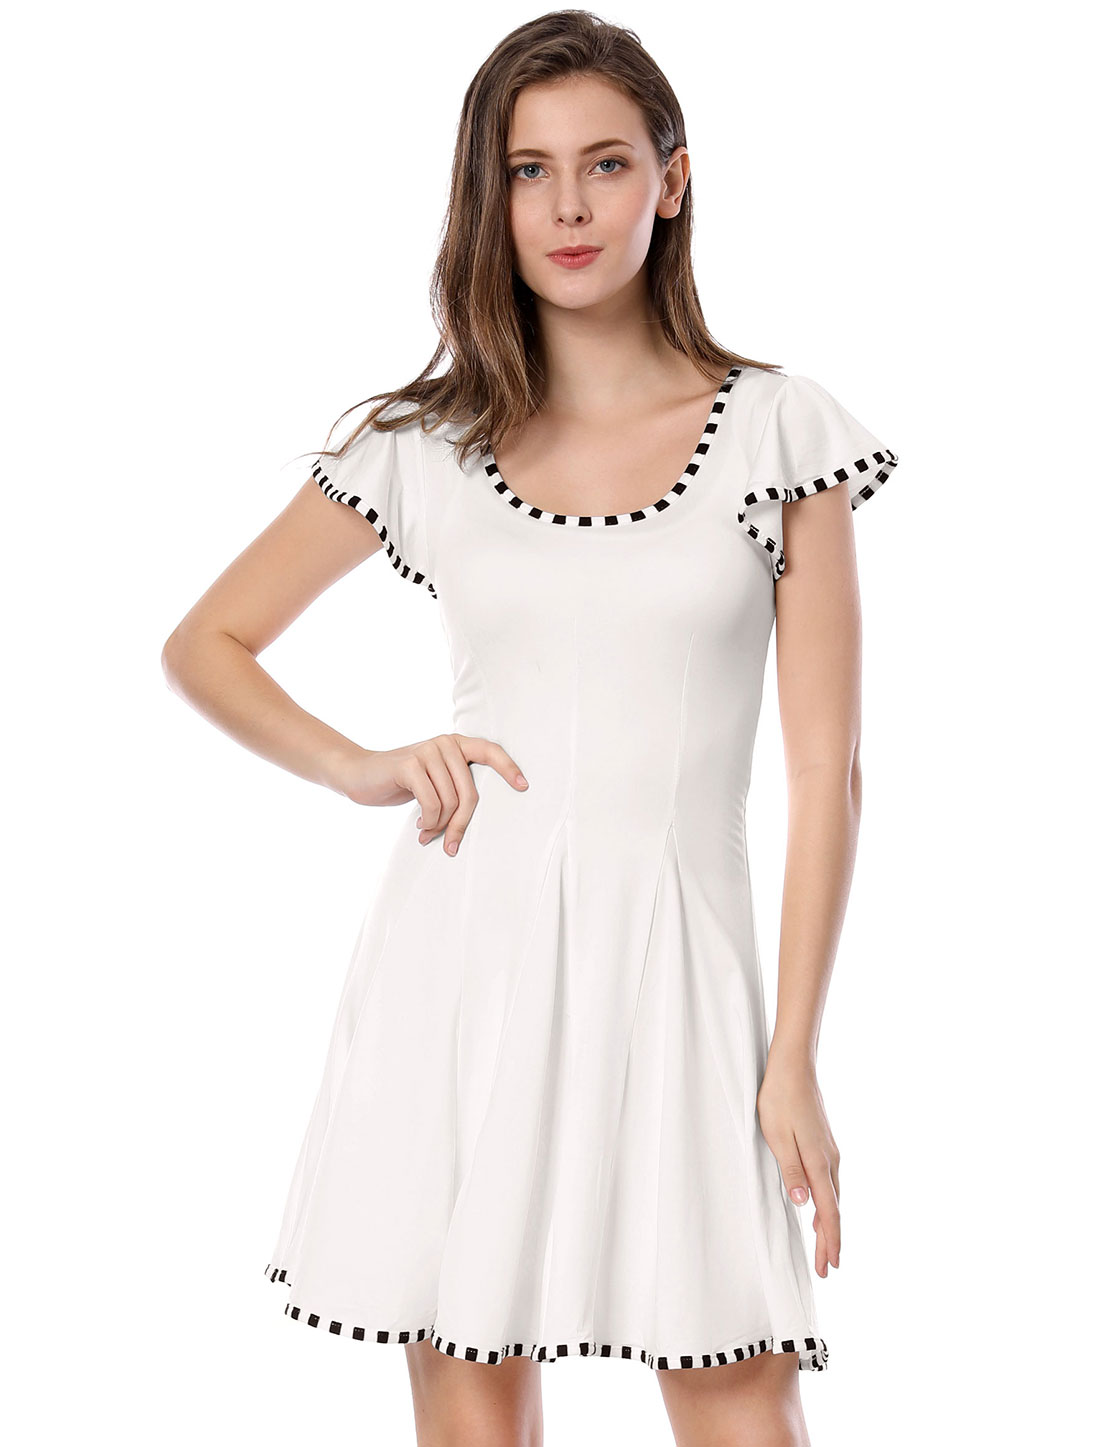 Size M Striped Detail Scoop Neck Cap Sleeve Dress White for Women